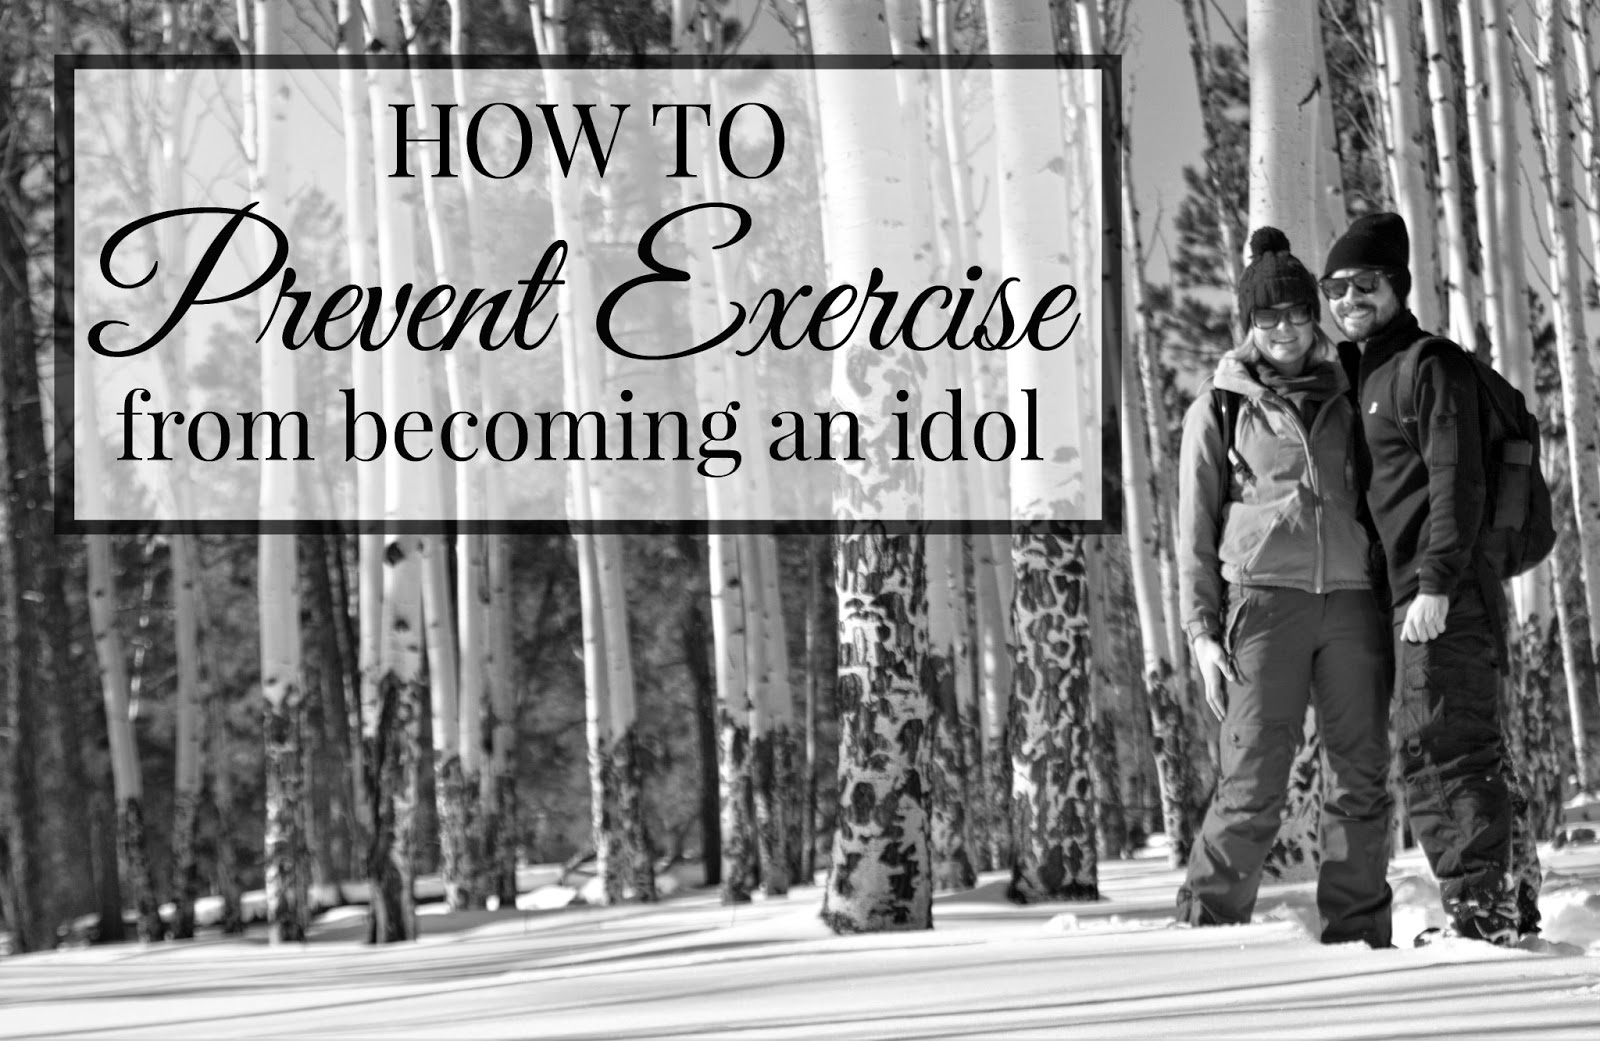 Preventing exercise from becoming an idol